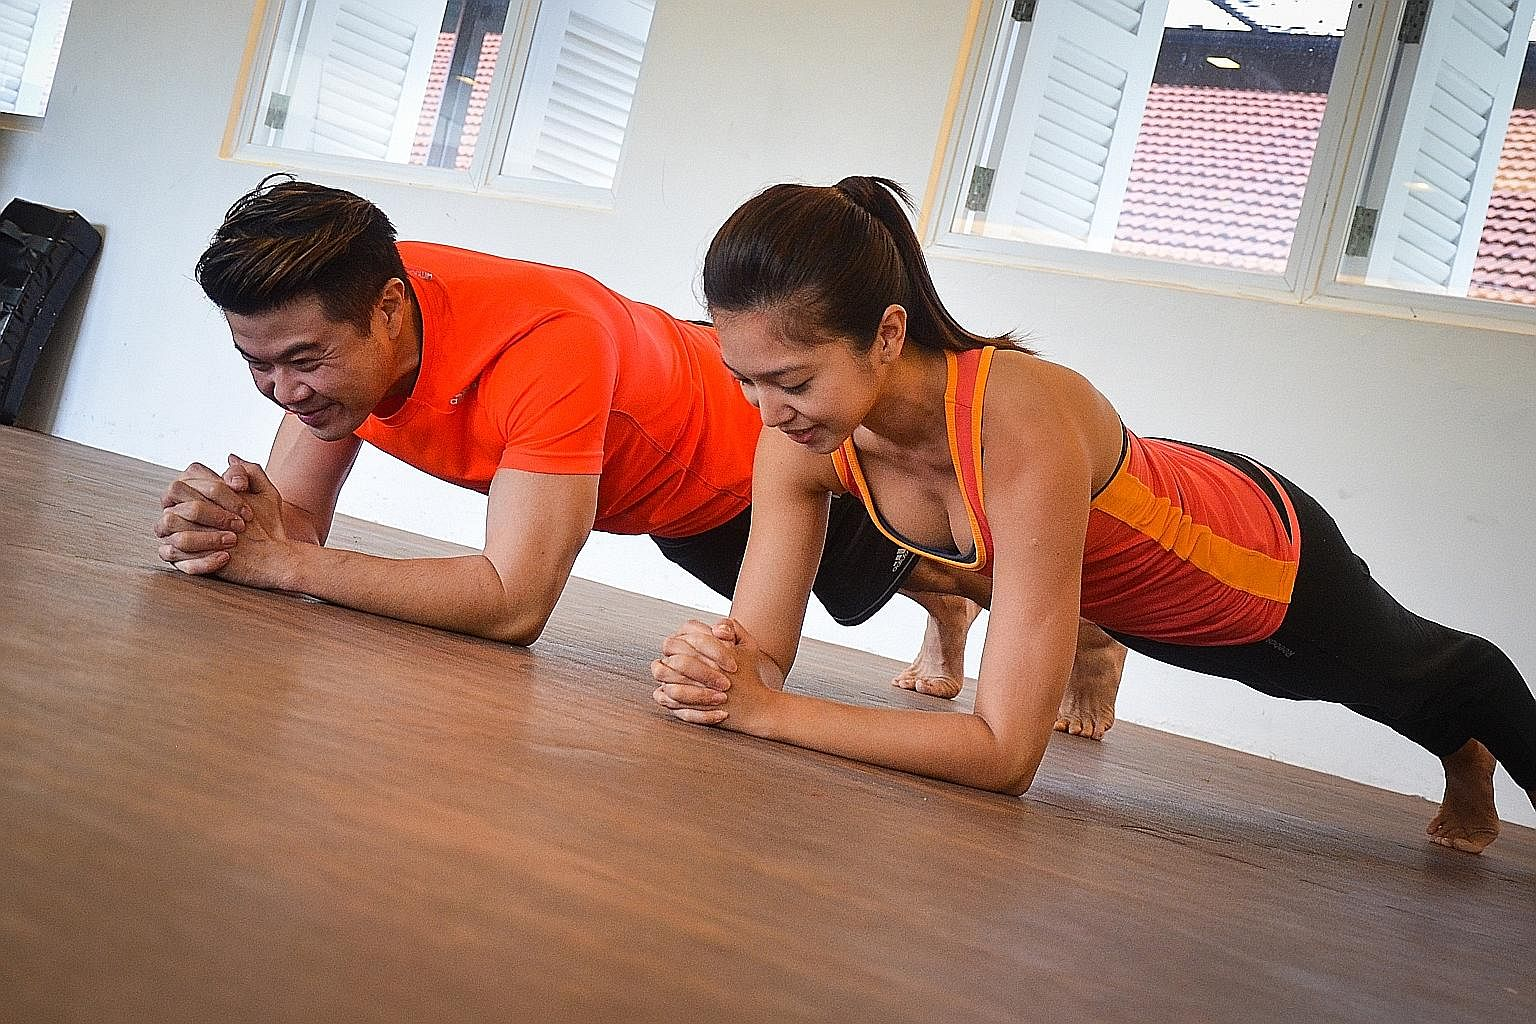 Bodyweight training is affordable as it uses minimal equipment.